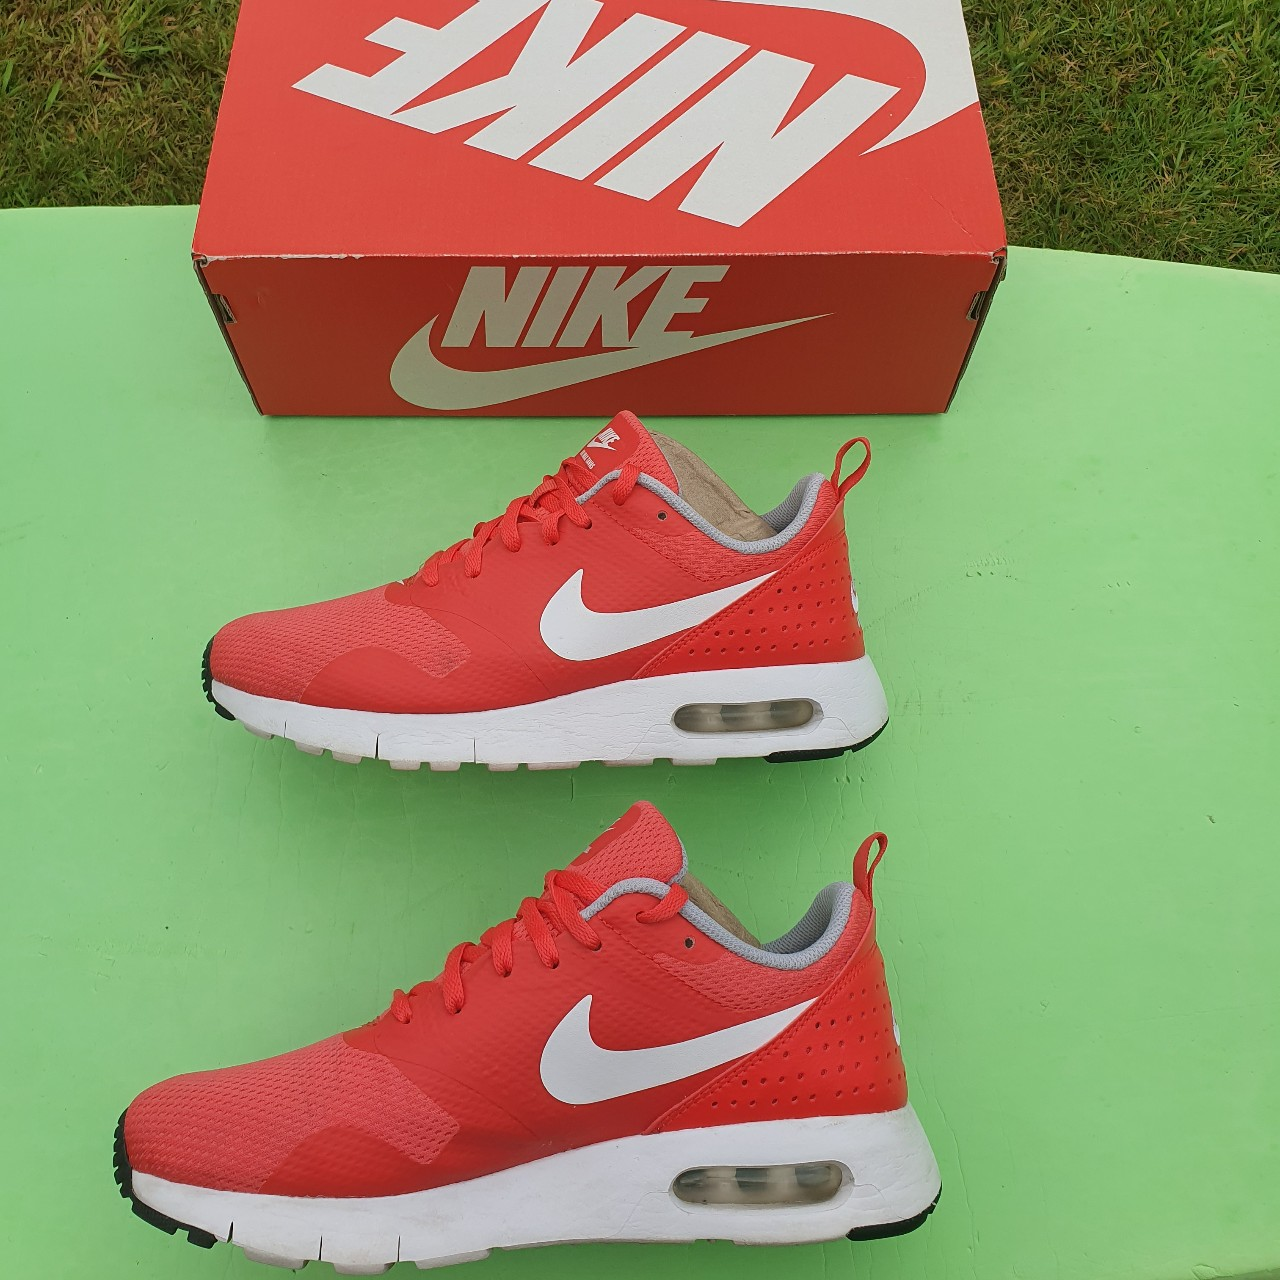 Womens Red Nike Air Max Tavas., Excellent condition,...